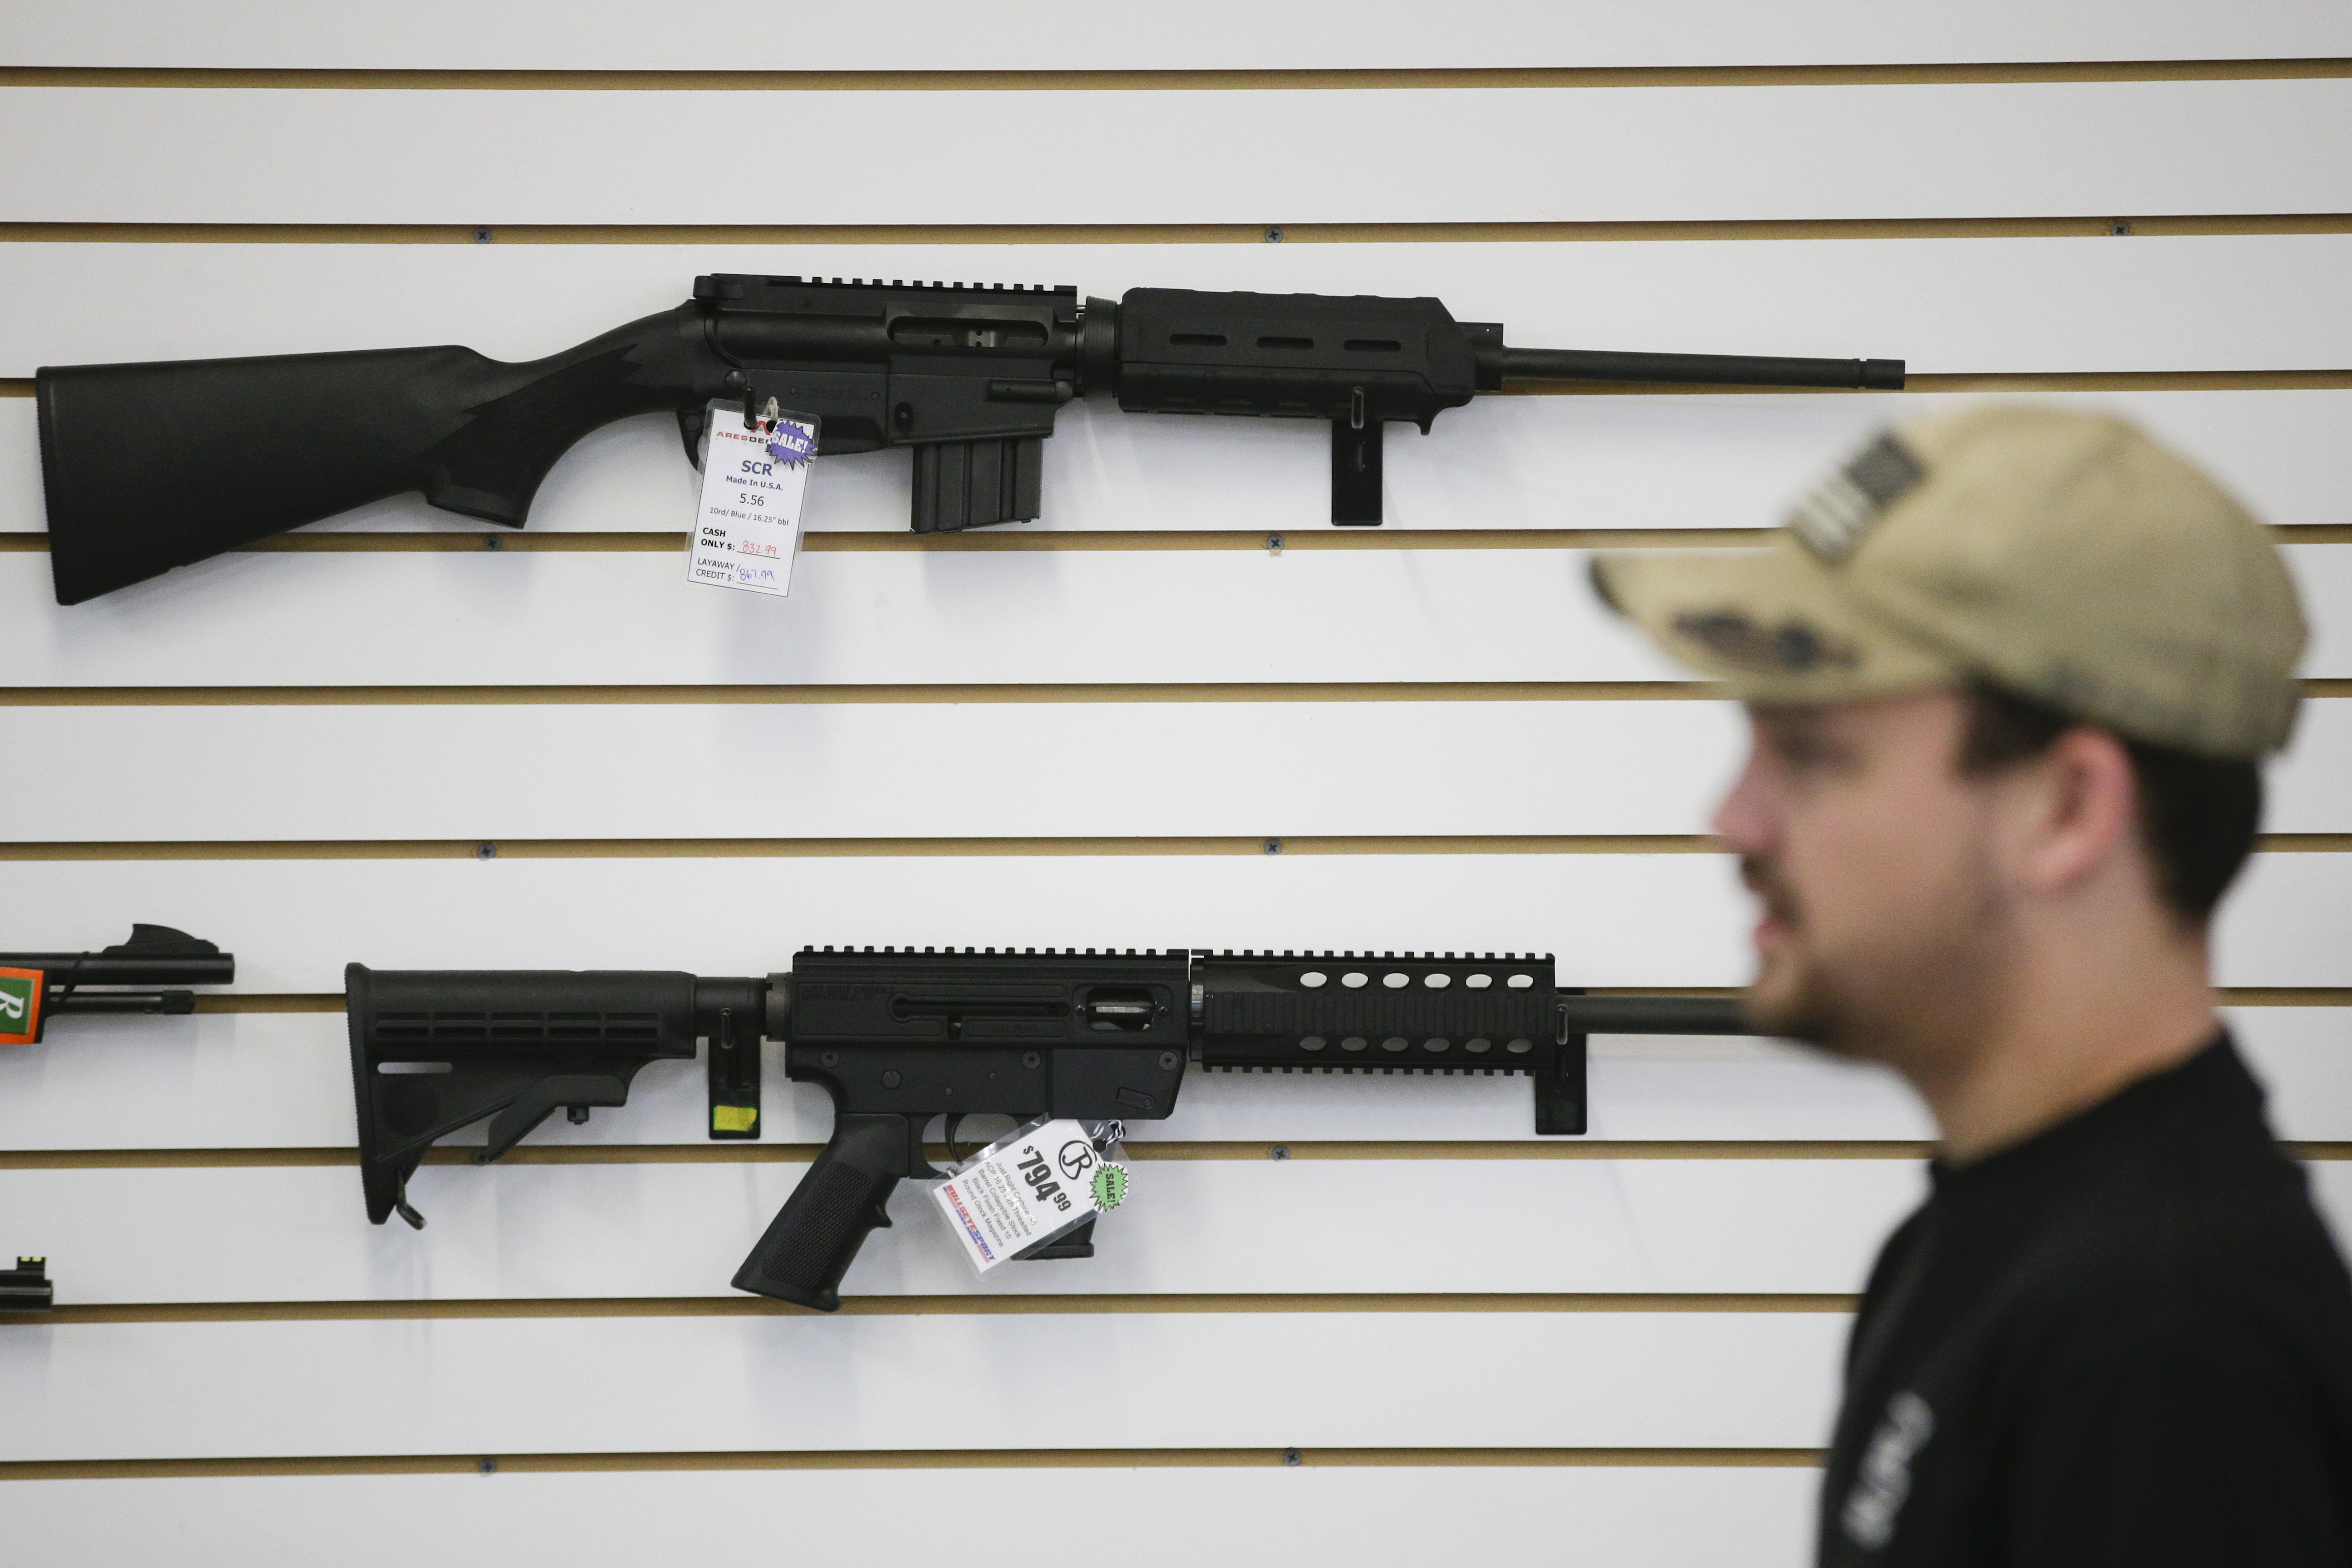 Firearm-Makers May Finally Decide It's in Their Interest to Help Reduce Gun Violence After Sandy Hook Ruling